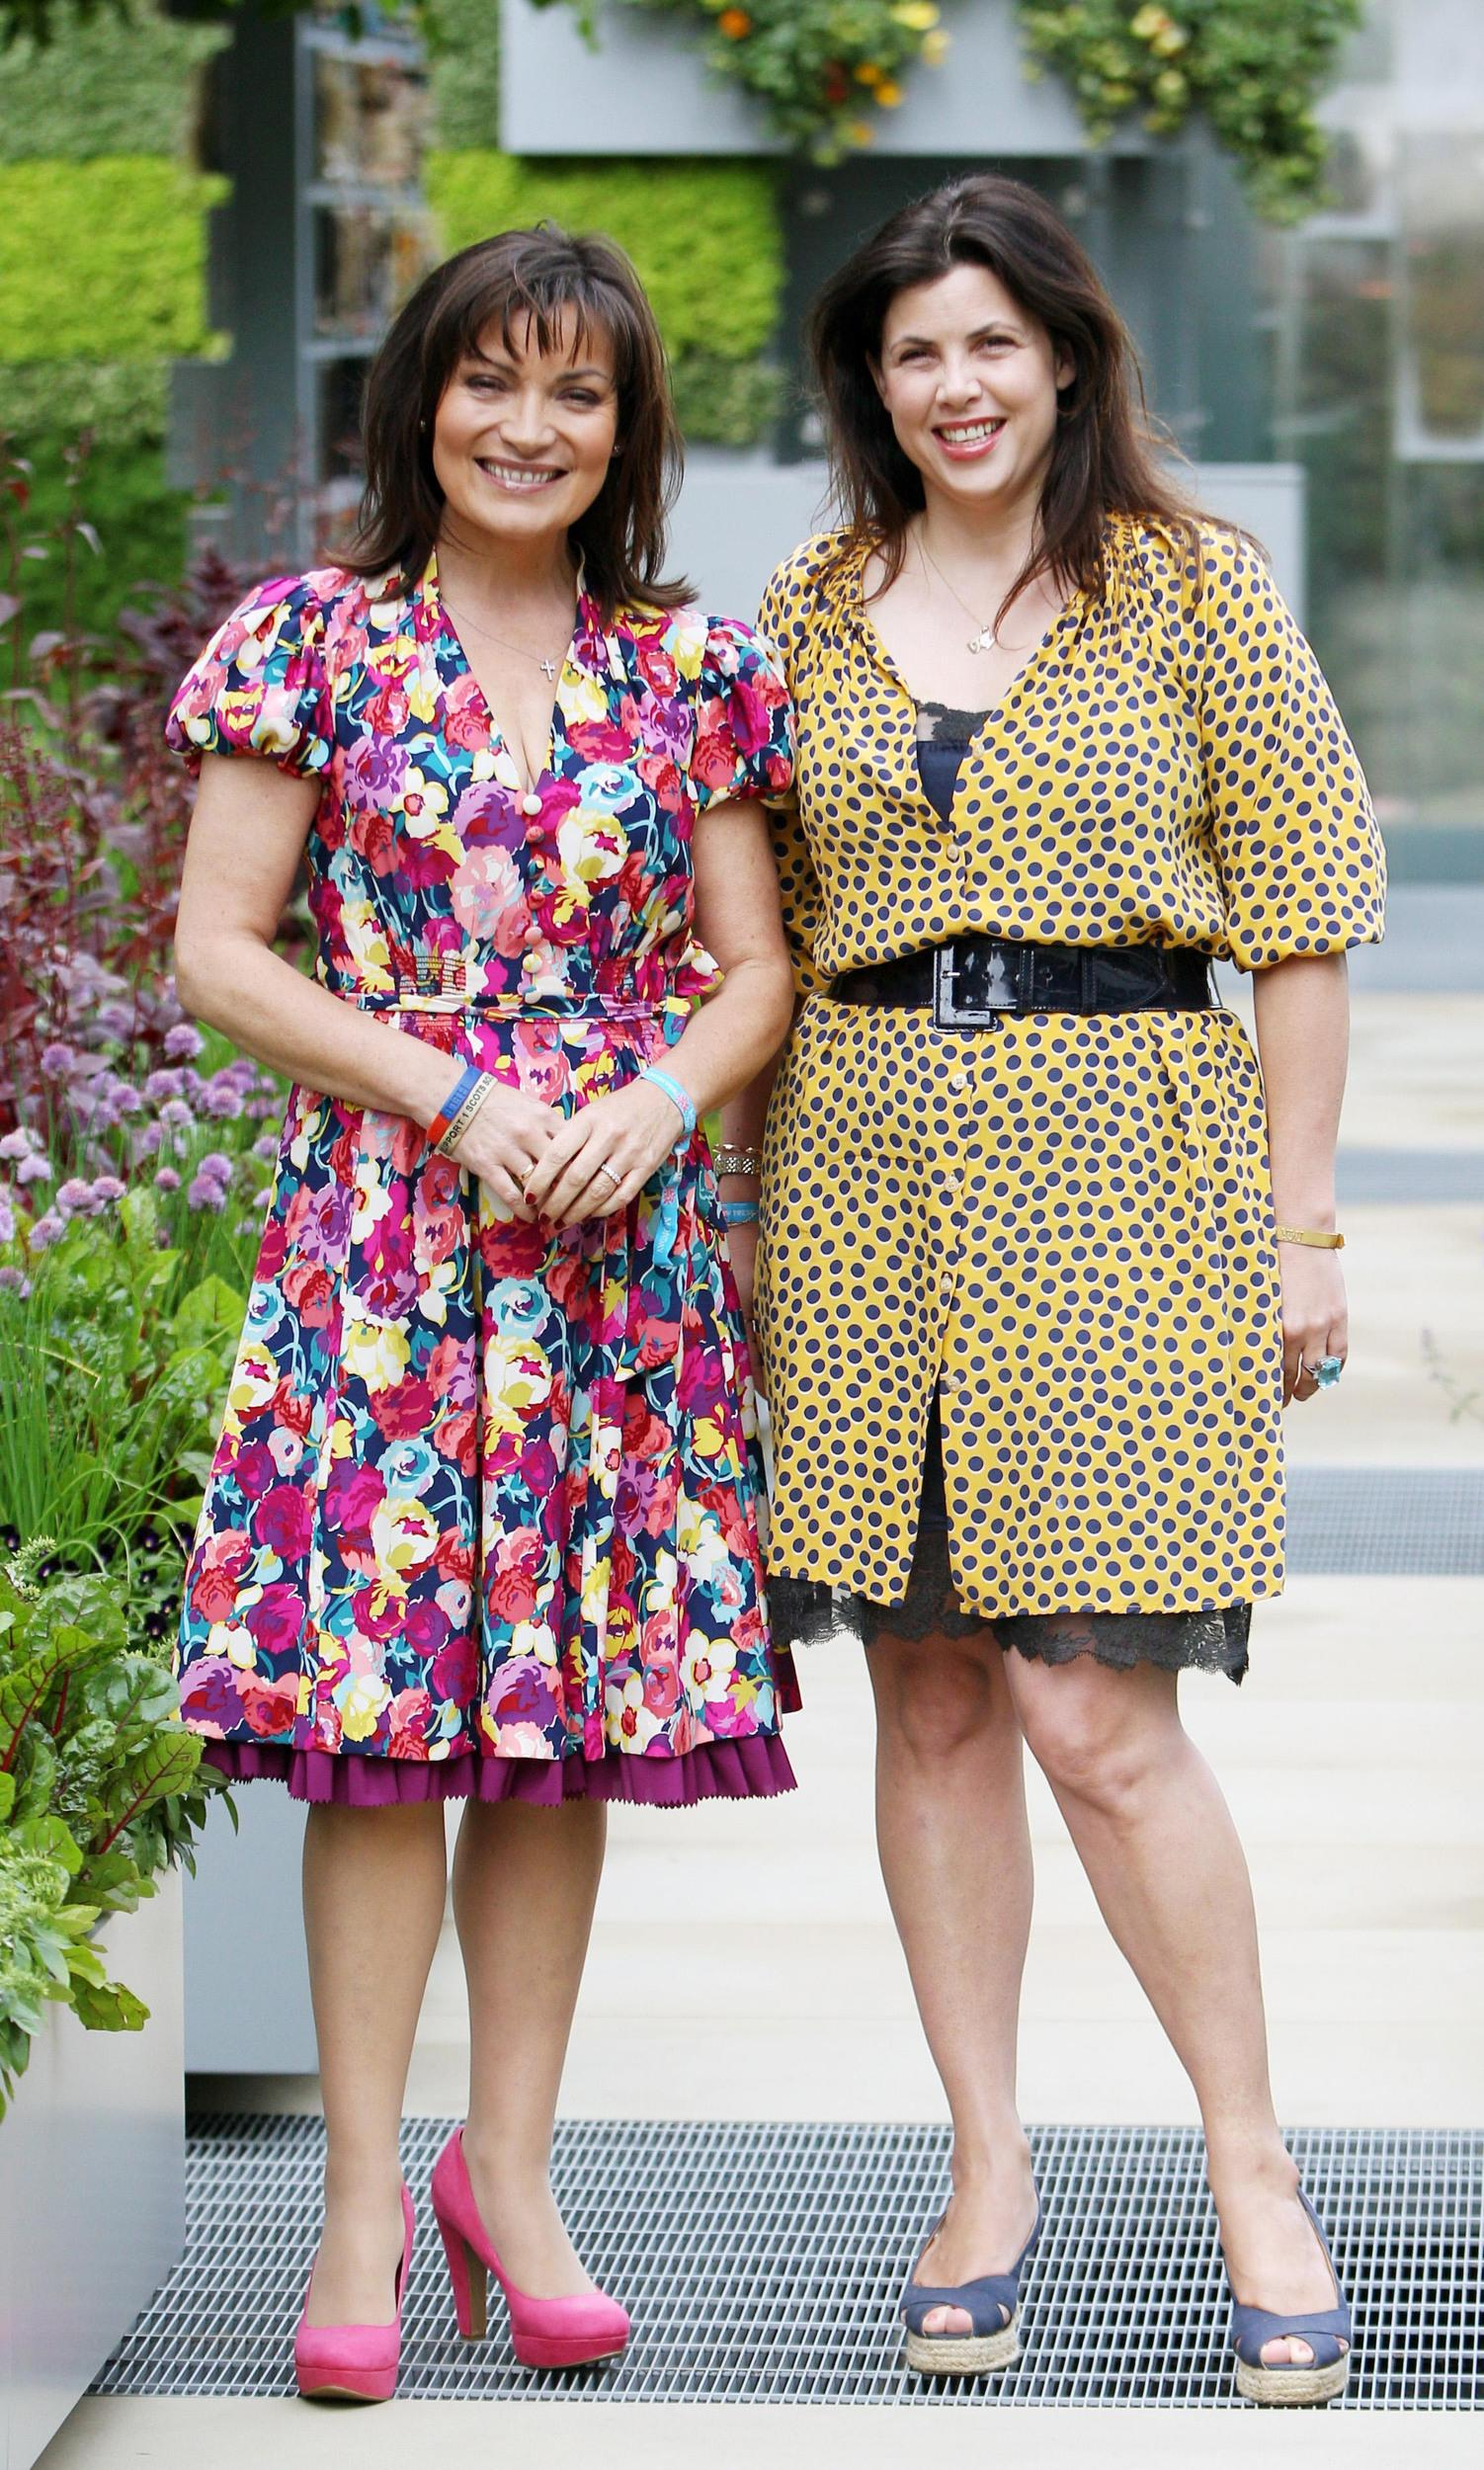 Lorraine Kelly and Kirstie Allsopp in the B&Q Garden, the tallest edible garden at the Chelsea Flower Show.